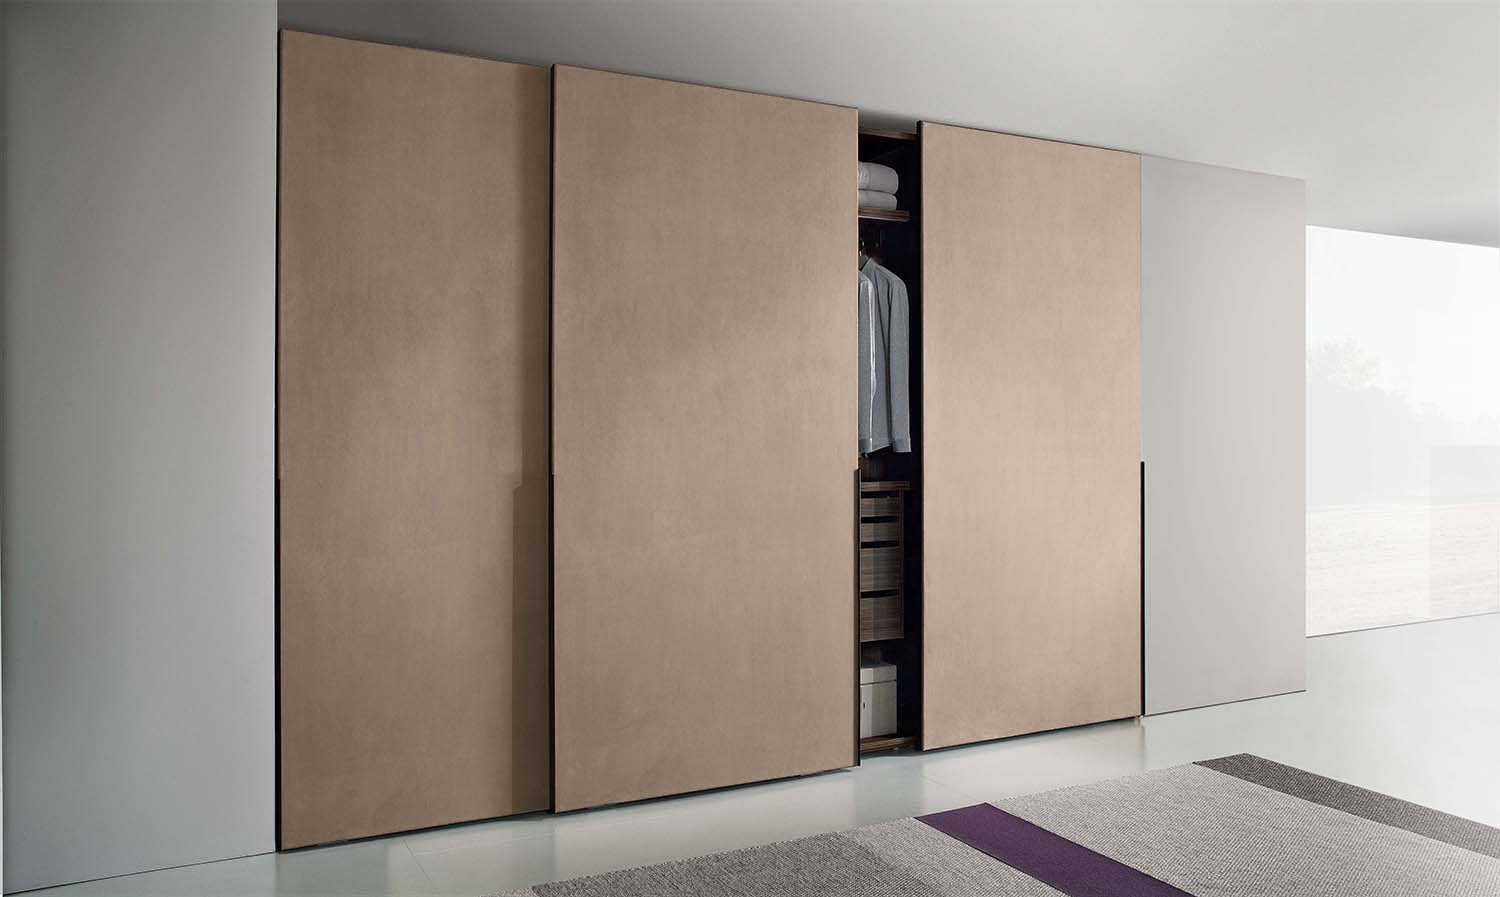 new-sliding-door-wardrobes-walk-in-wardrobe-zone-ilnzpgb-.jpg